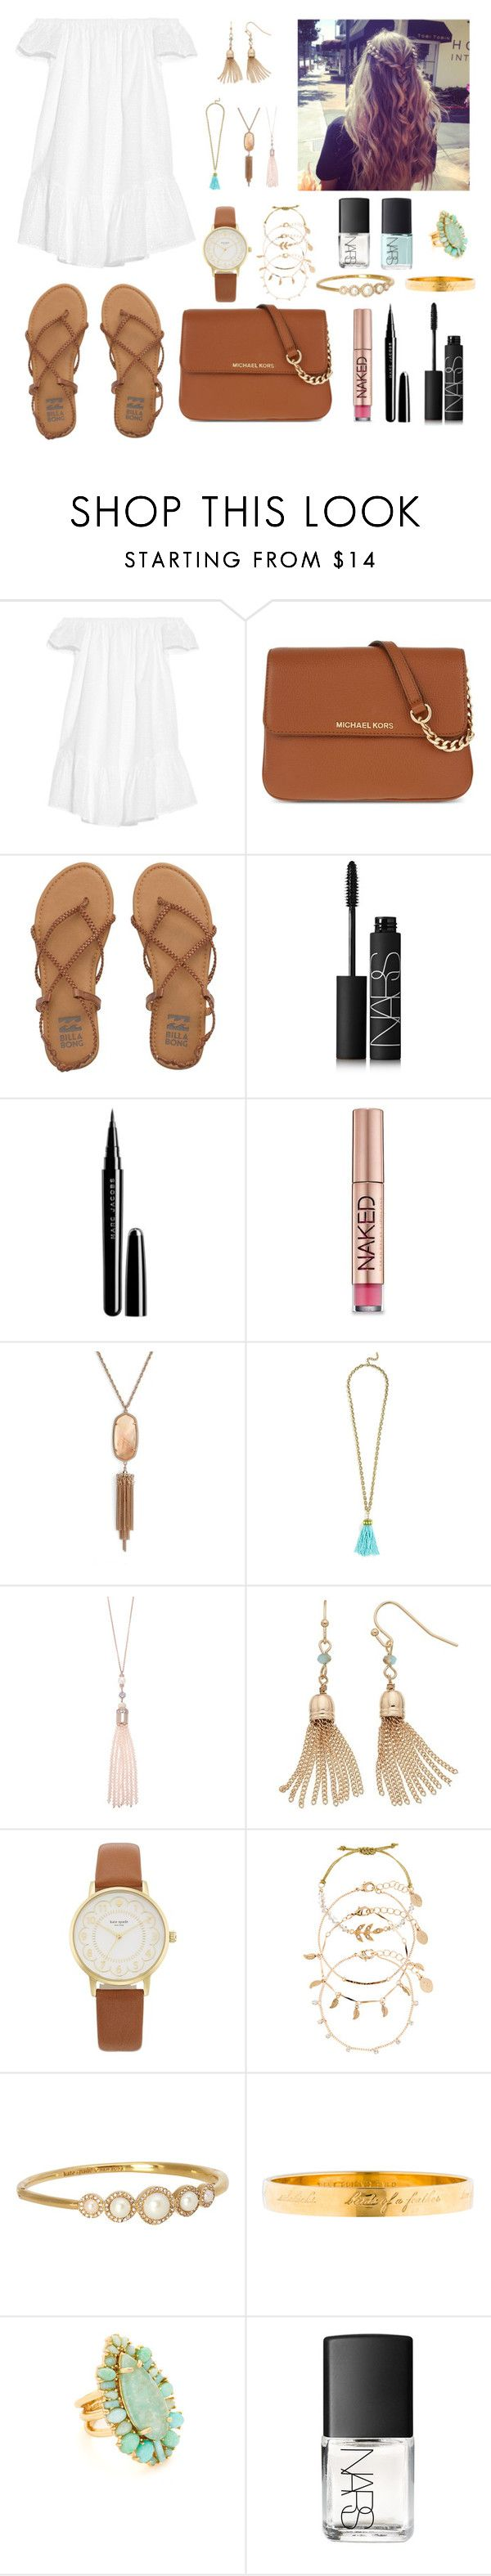 """""""Untitled #190"""" by katymccord77 ❤ liked on Polyvore featuring Elizabeth and James, MICHAEL Michael Kors, Billabong, NARS Cosmetics, Marc Jacobs, Urban Decay, Kendra Scott, BaubleBar, Oasis and LC Lauren Conrad"""